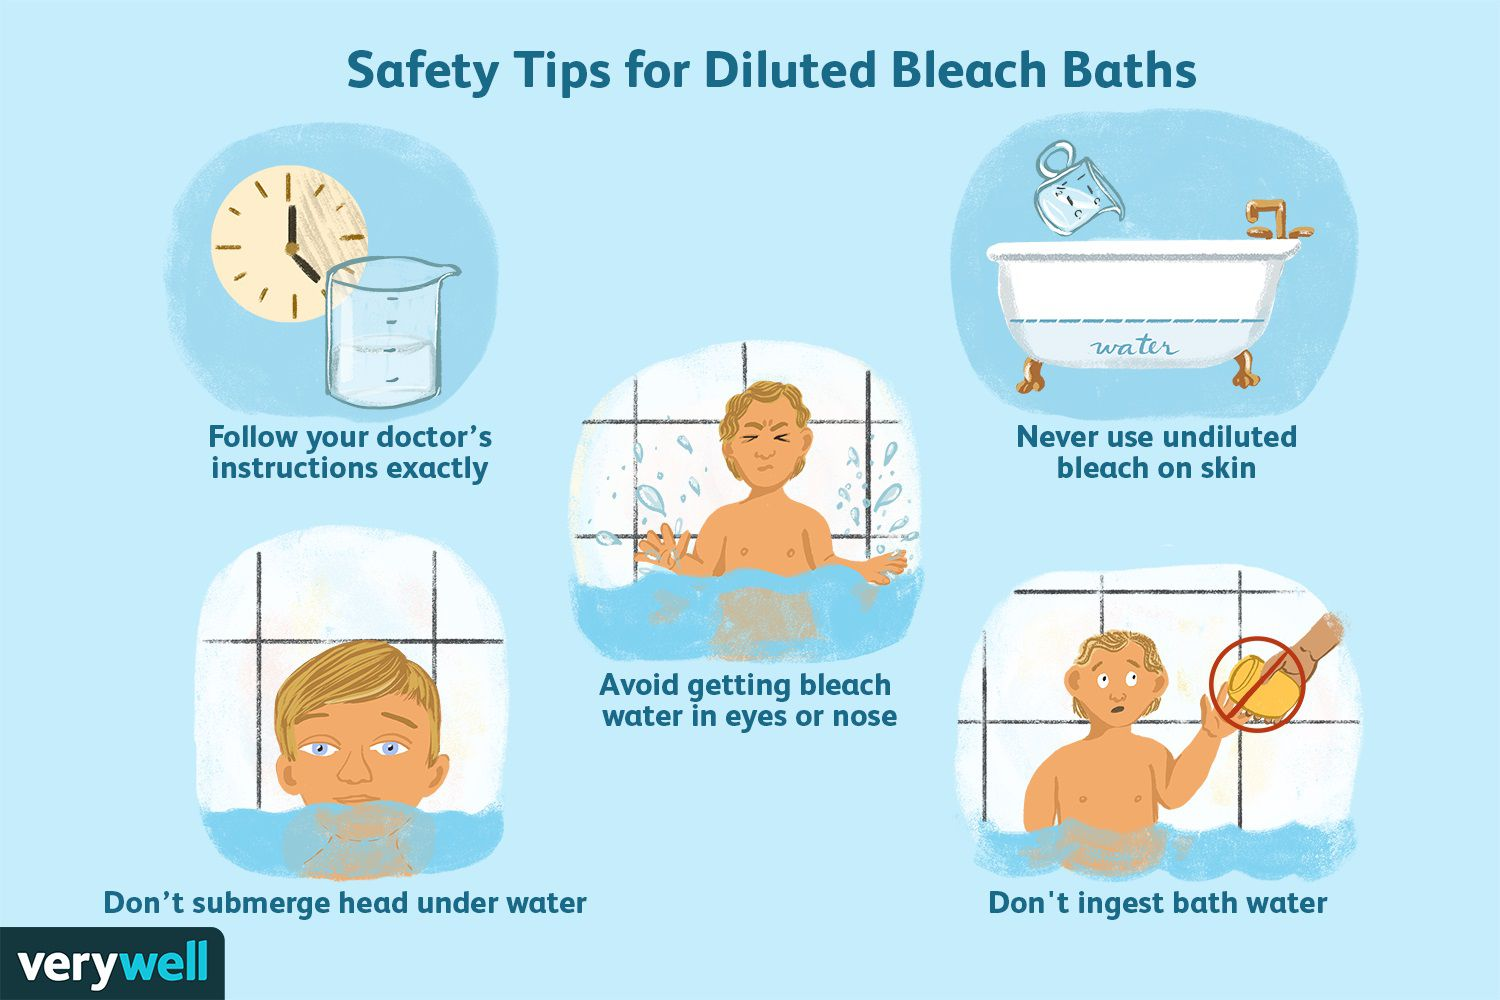 Safety Tips for Diluted Bleach Baths